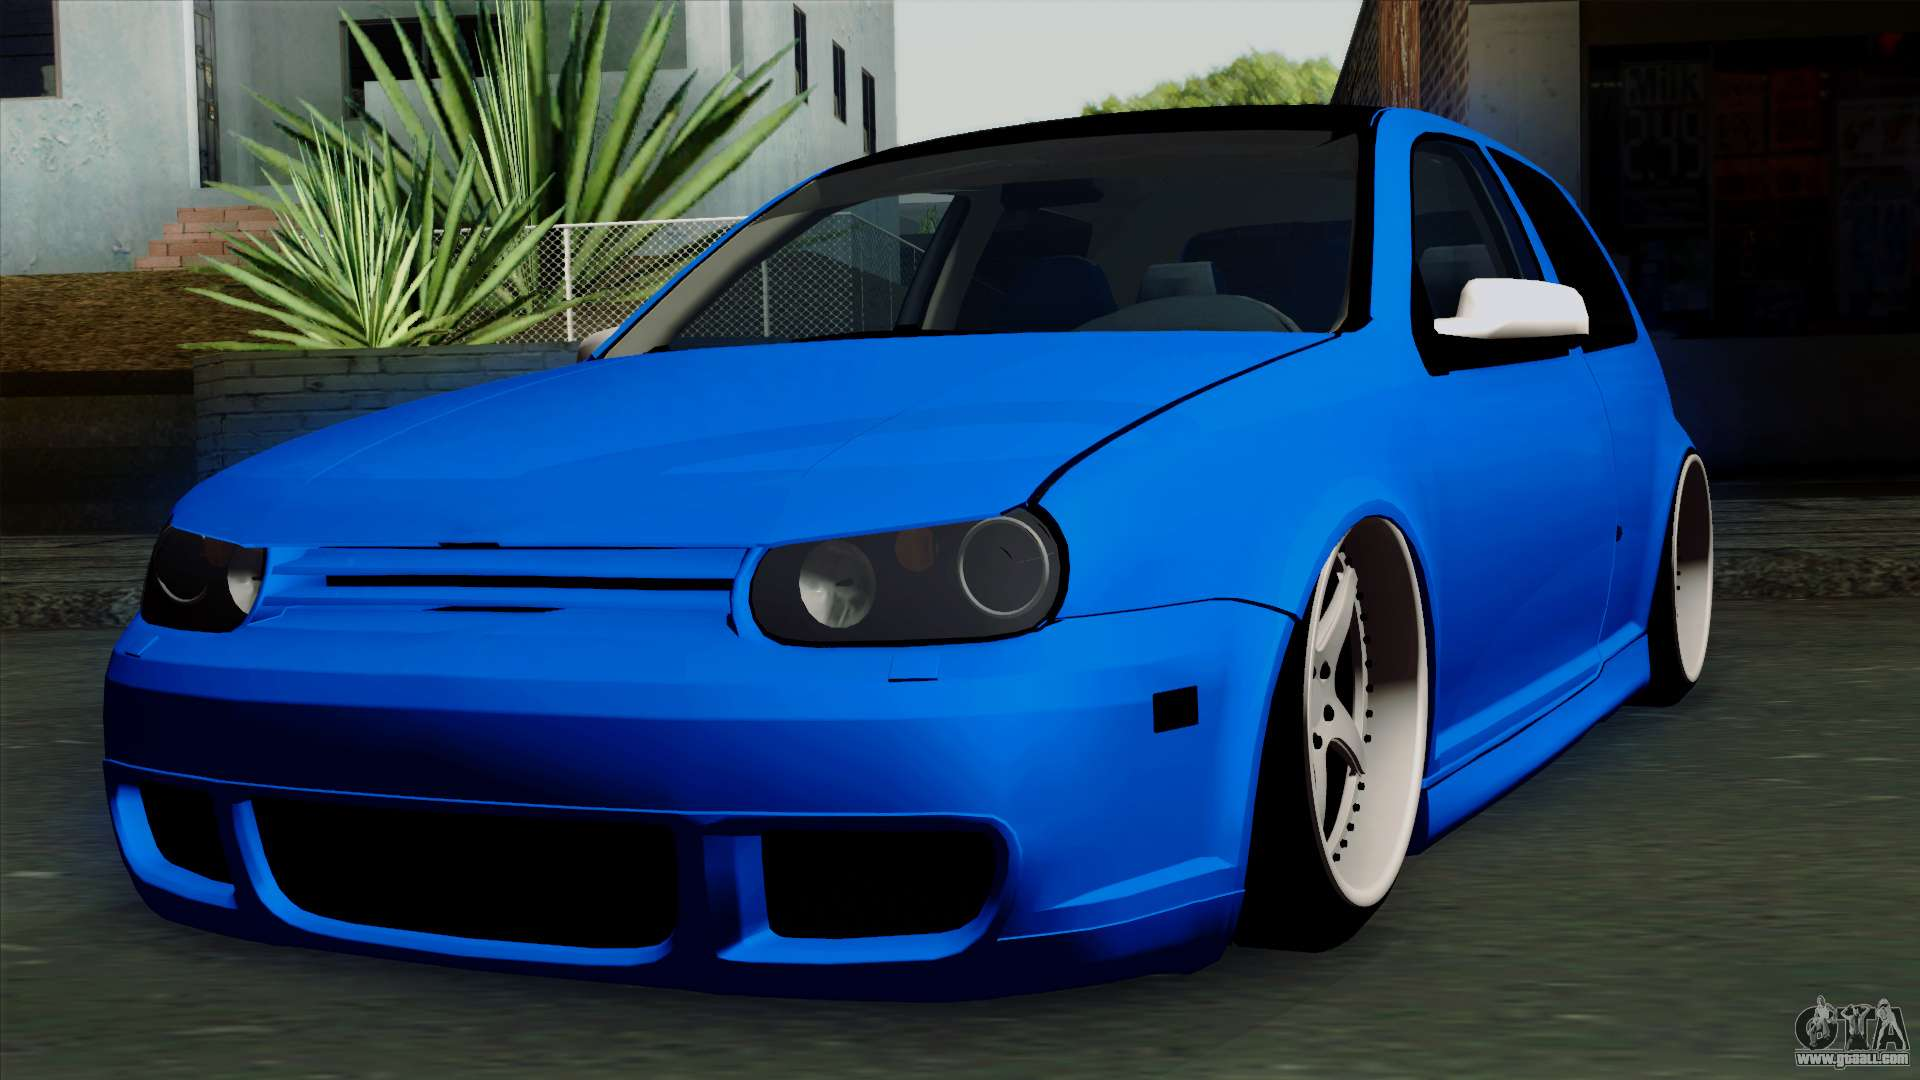 Gta San Andreas Cars That Can Be Modified